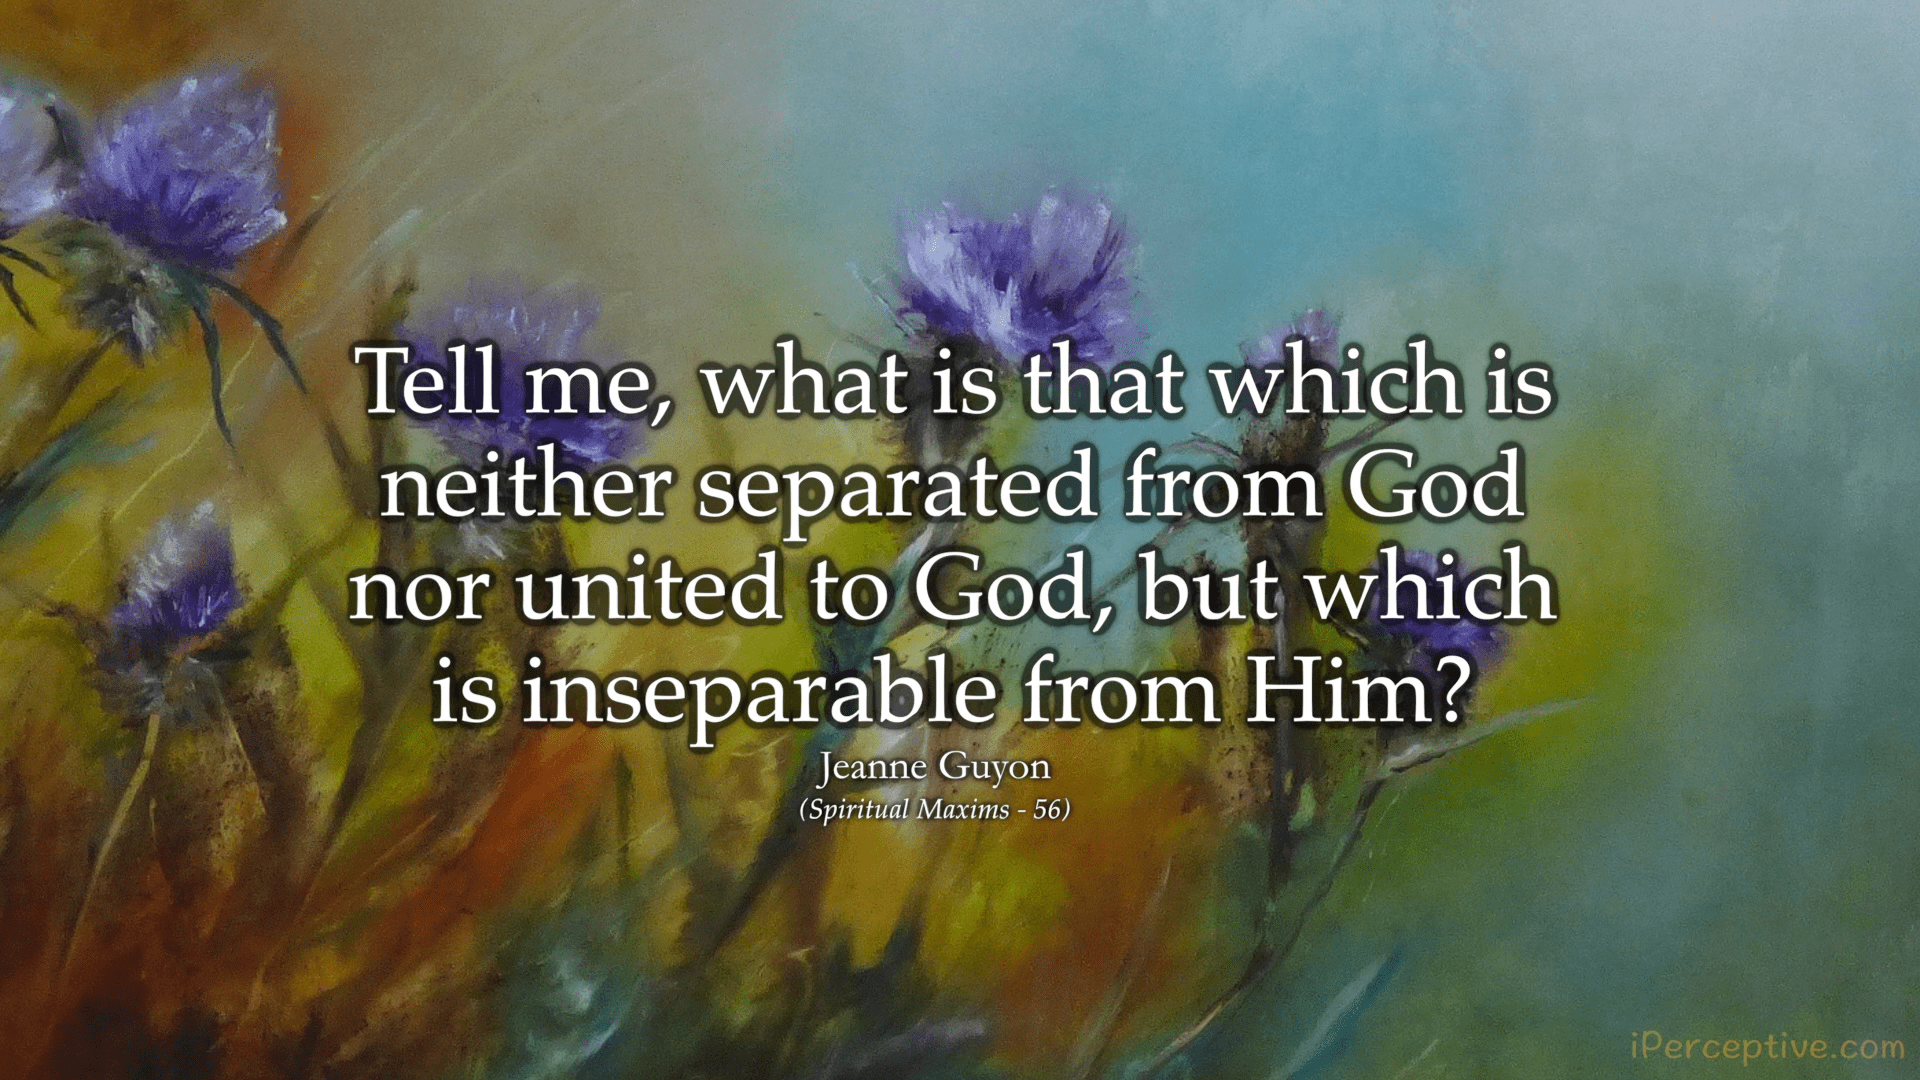 Jeanne Guyon Quote: Tell me what is neither separated from God nor united to God...